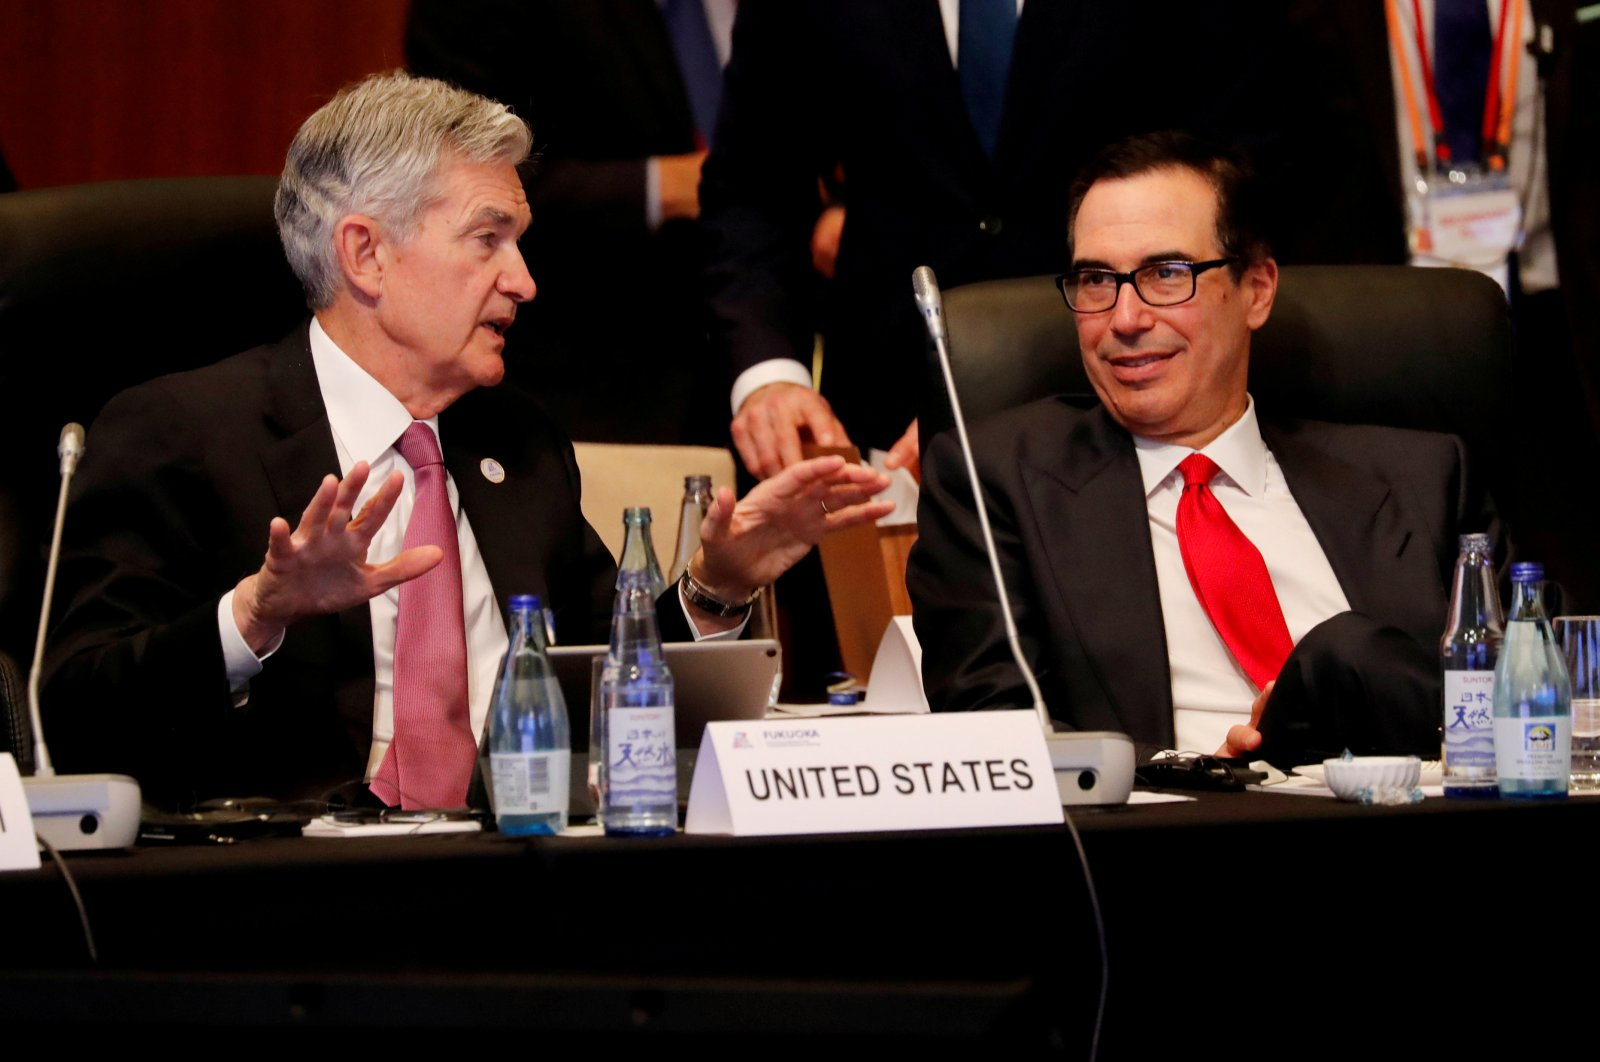 Federal Reserve Chairman Jerome Powell talks with U.S. Treasury Secretary Steven Mnuchin during the G-20 finance ministers and central bank governors meeting in Fukuoka, Japan June 8, 2019. (REUTERS Photo)